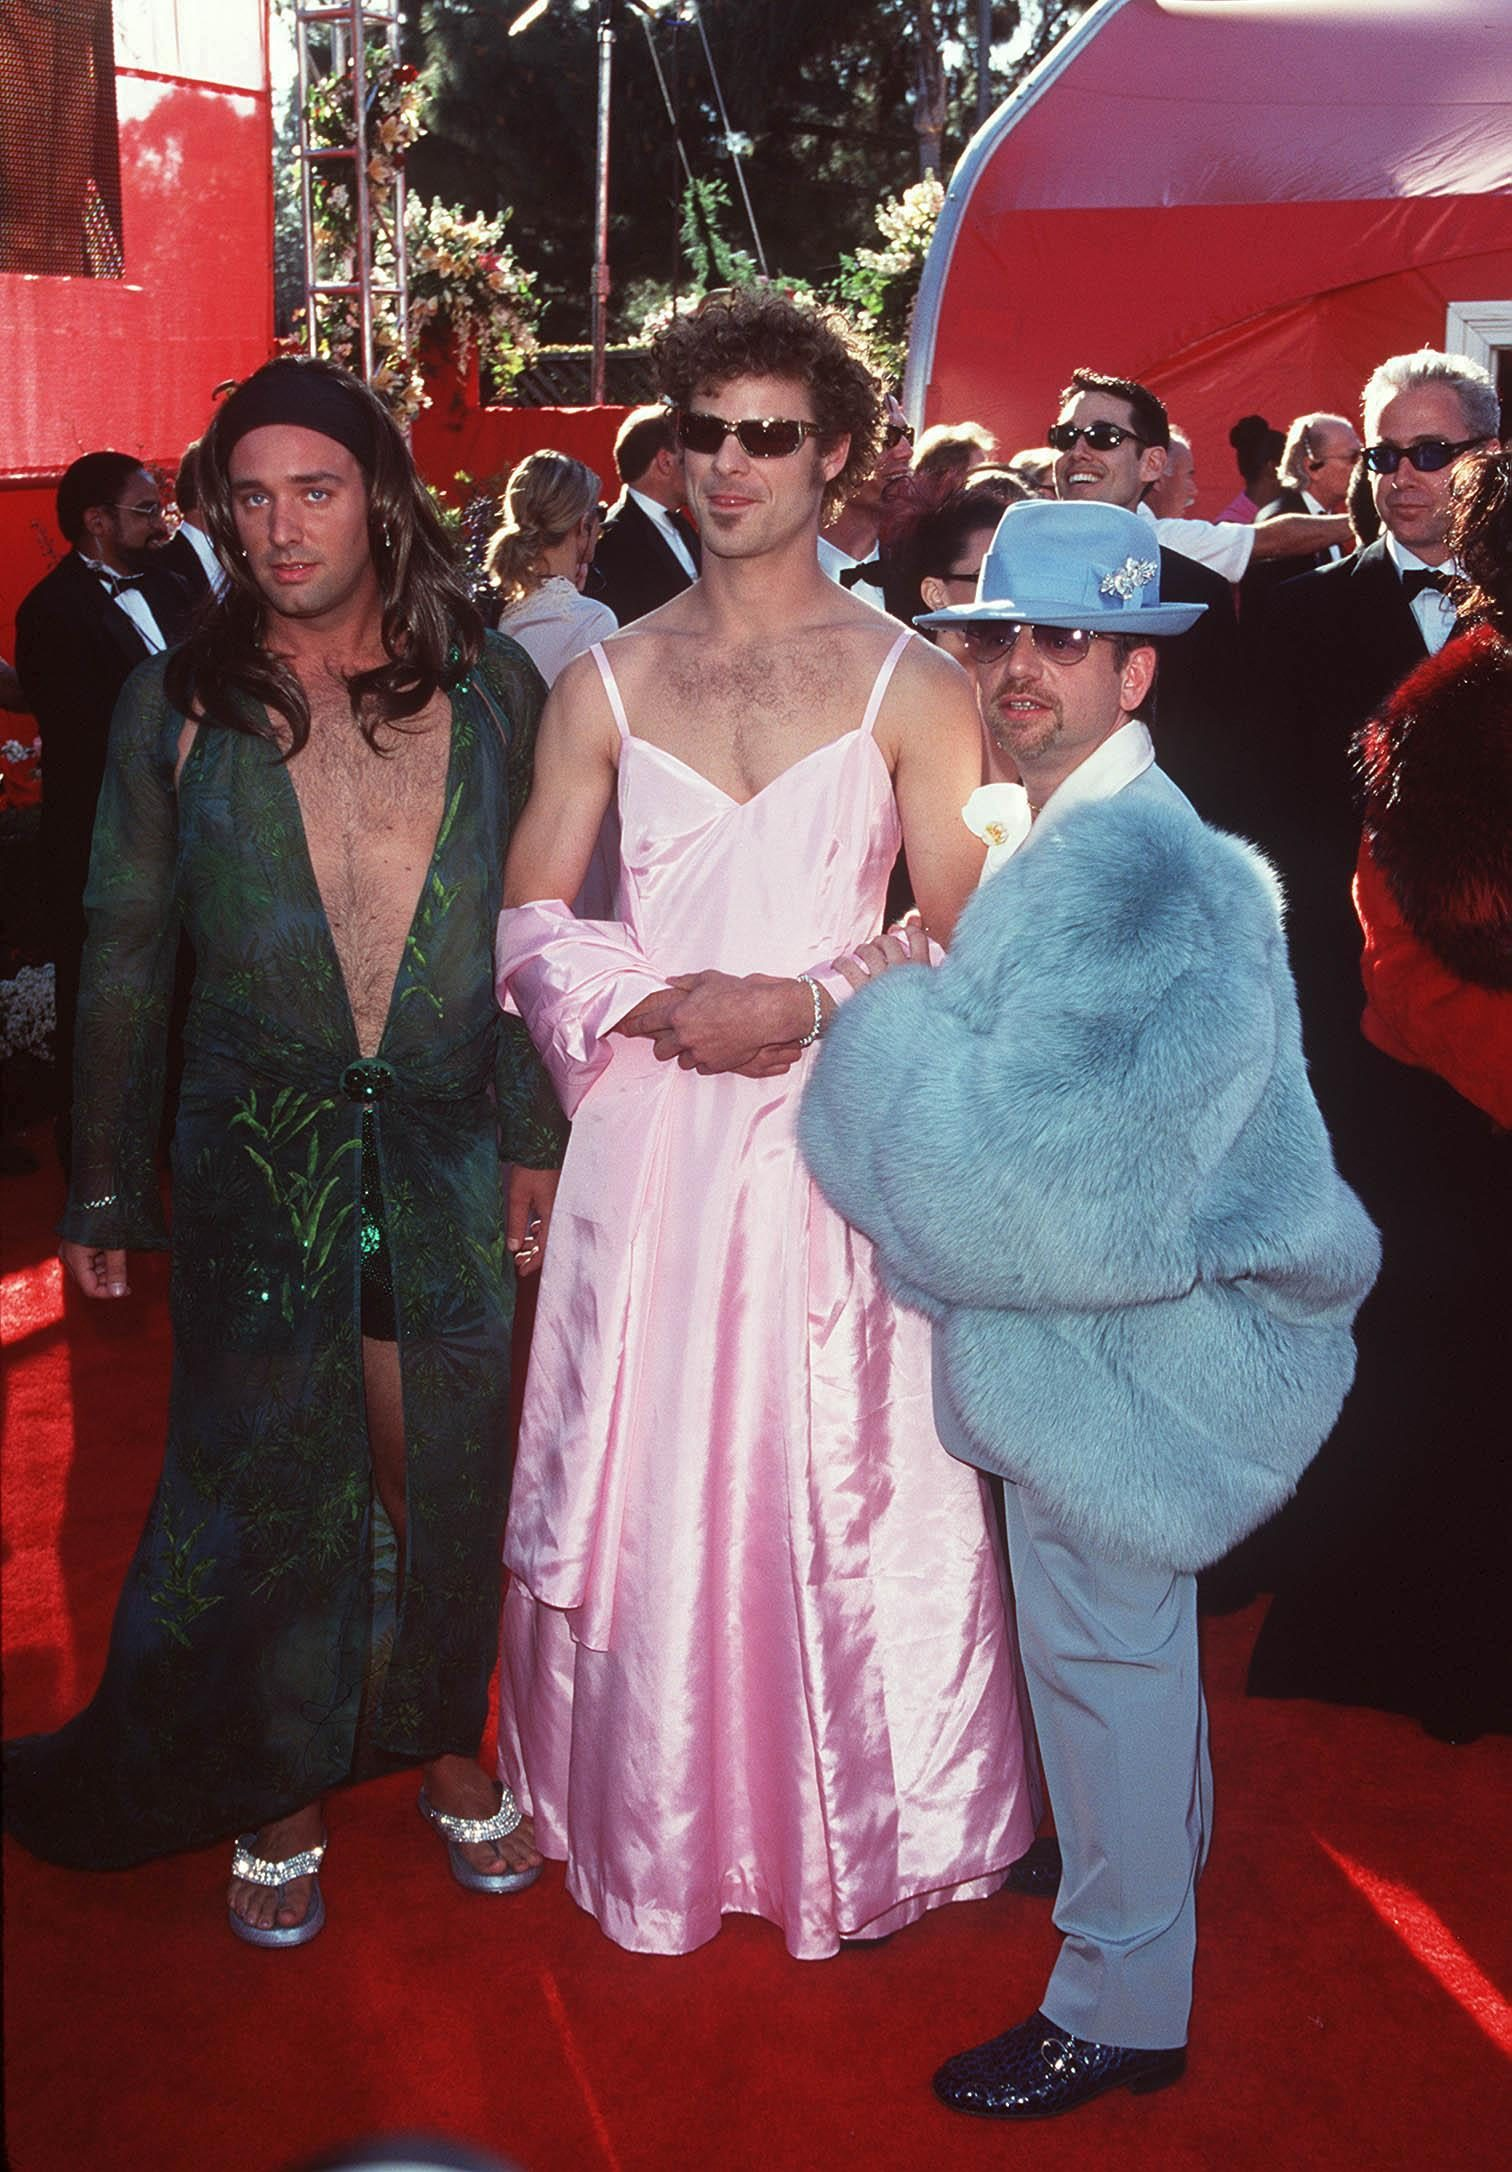 Mandatory Credit: Photo by Stewart Cook/Shutterstock (318826bp) TREY PARKER [ LEFT ] MATT STONE [ CENTRE ] AND MARC SHAIMAN 72ND ACADEMY AWARDS, SHRINE AUDITORIUM, LOS ANGELES, AMERICA - 26 MAR 2000